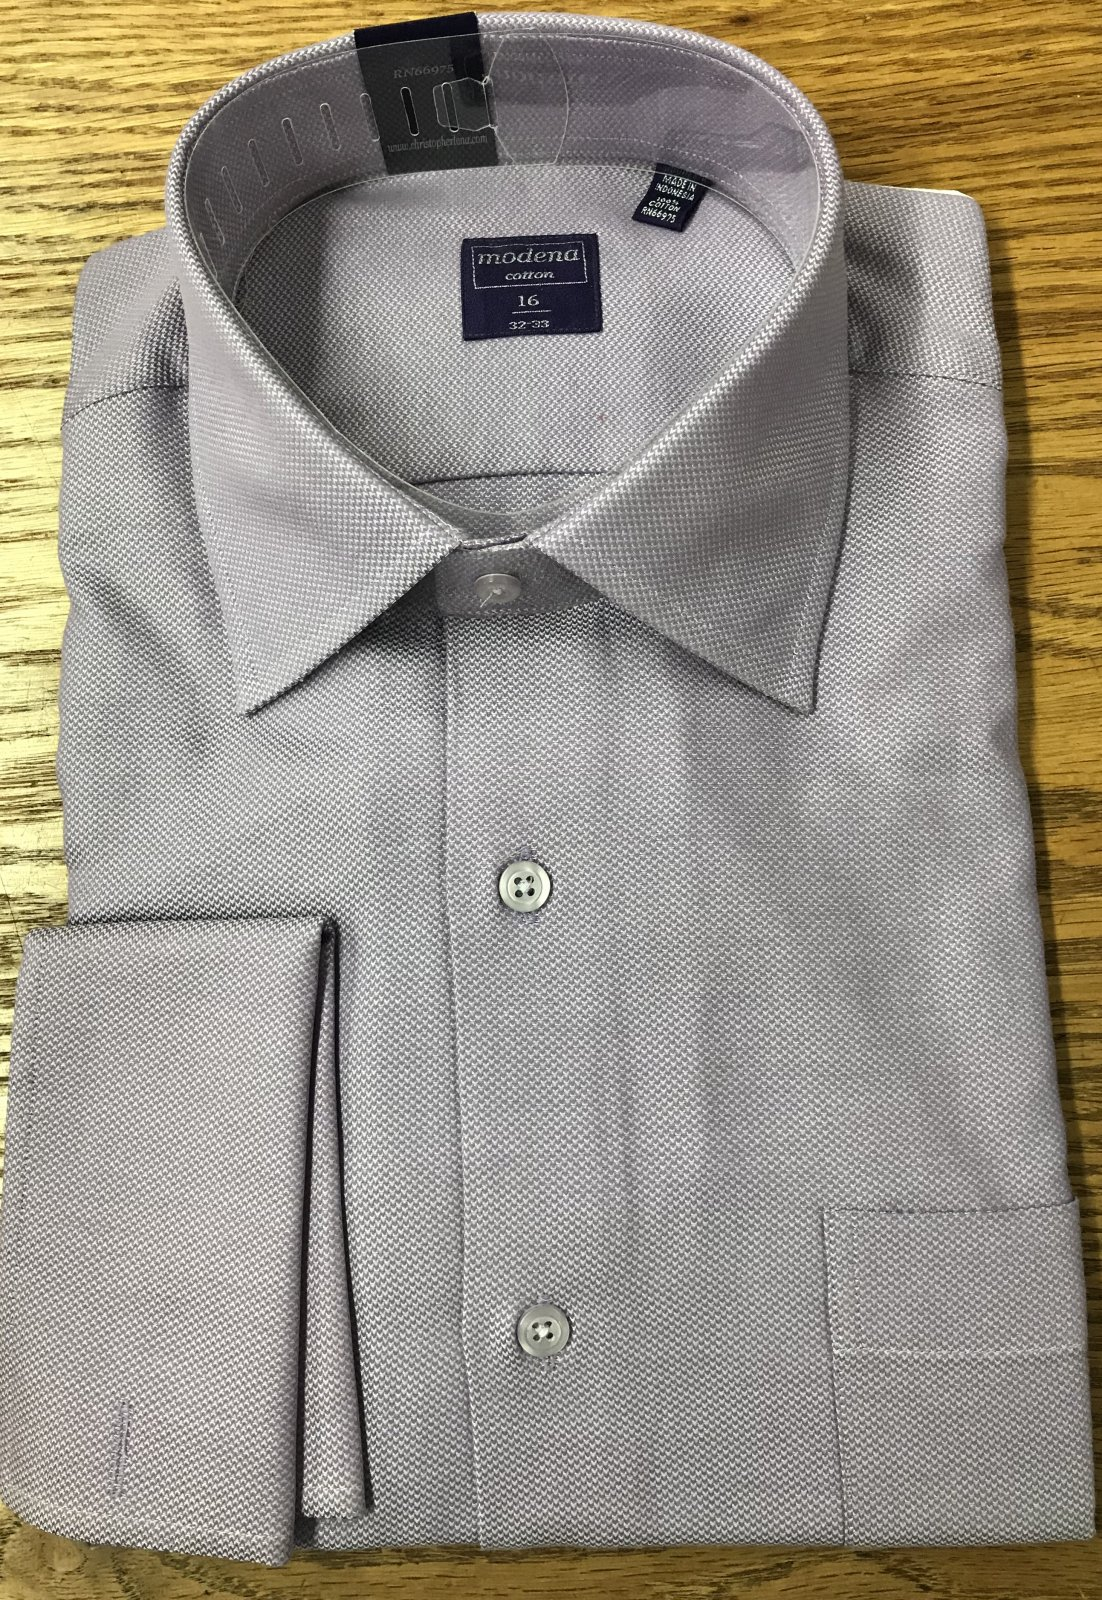 Modena Lavender French Cuff Shirt